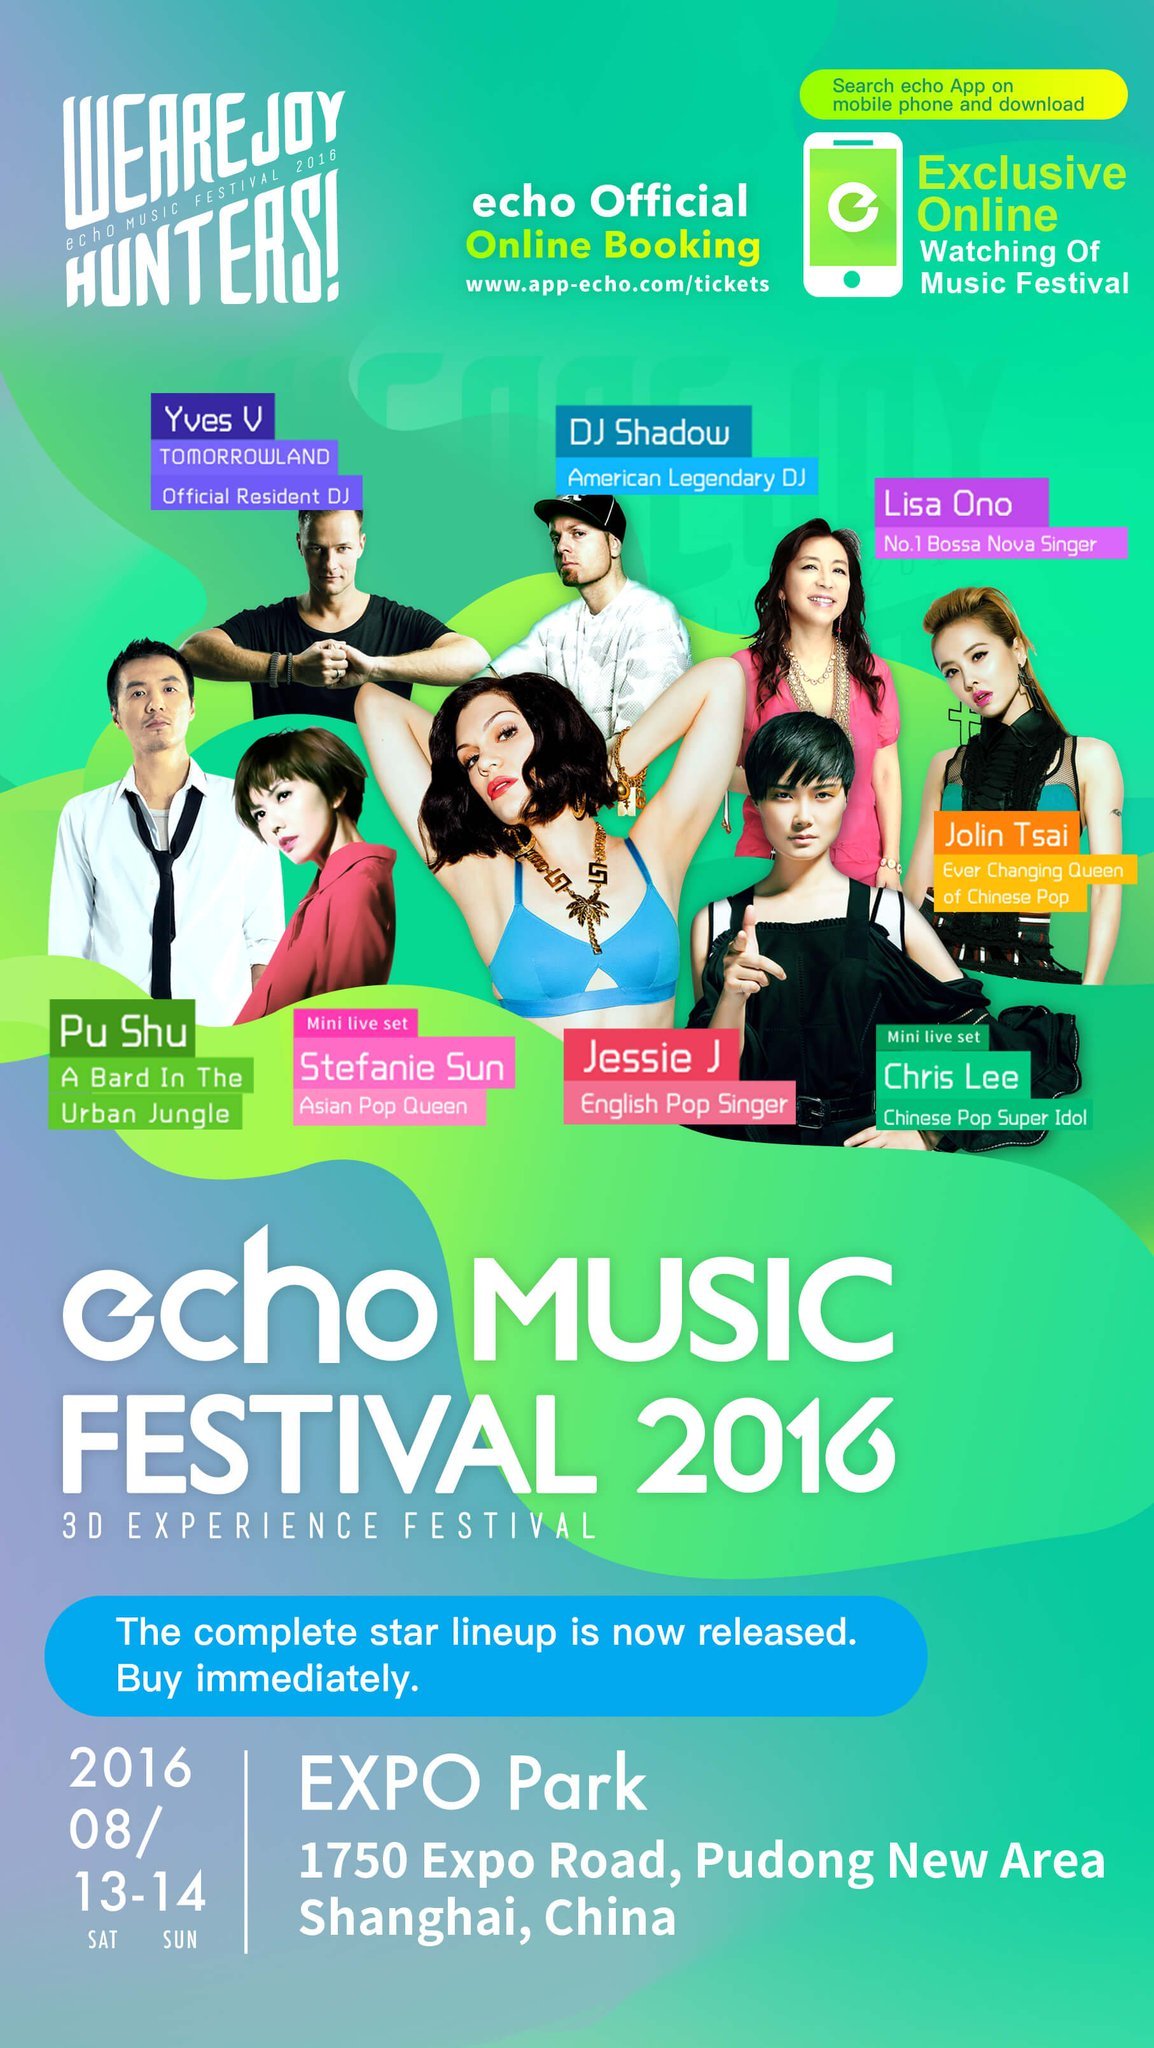 China! I'm headlining the Echo music festival in Shanghai August 14th Info-https://t.co/w7y8HKZ6PF  Can't wait!!! https://t.co/Lp6dNbCUBX